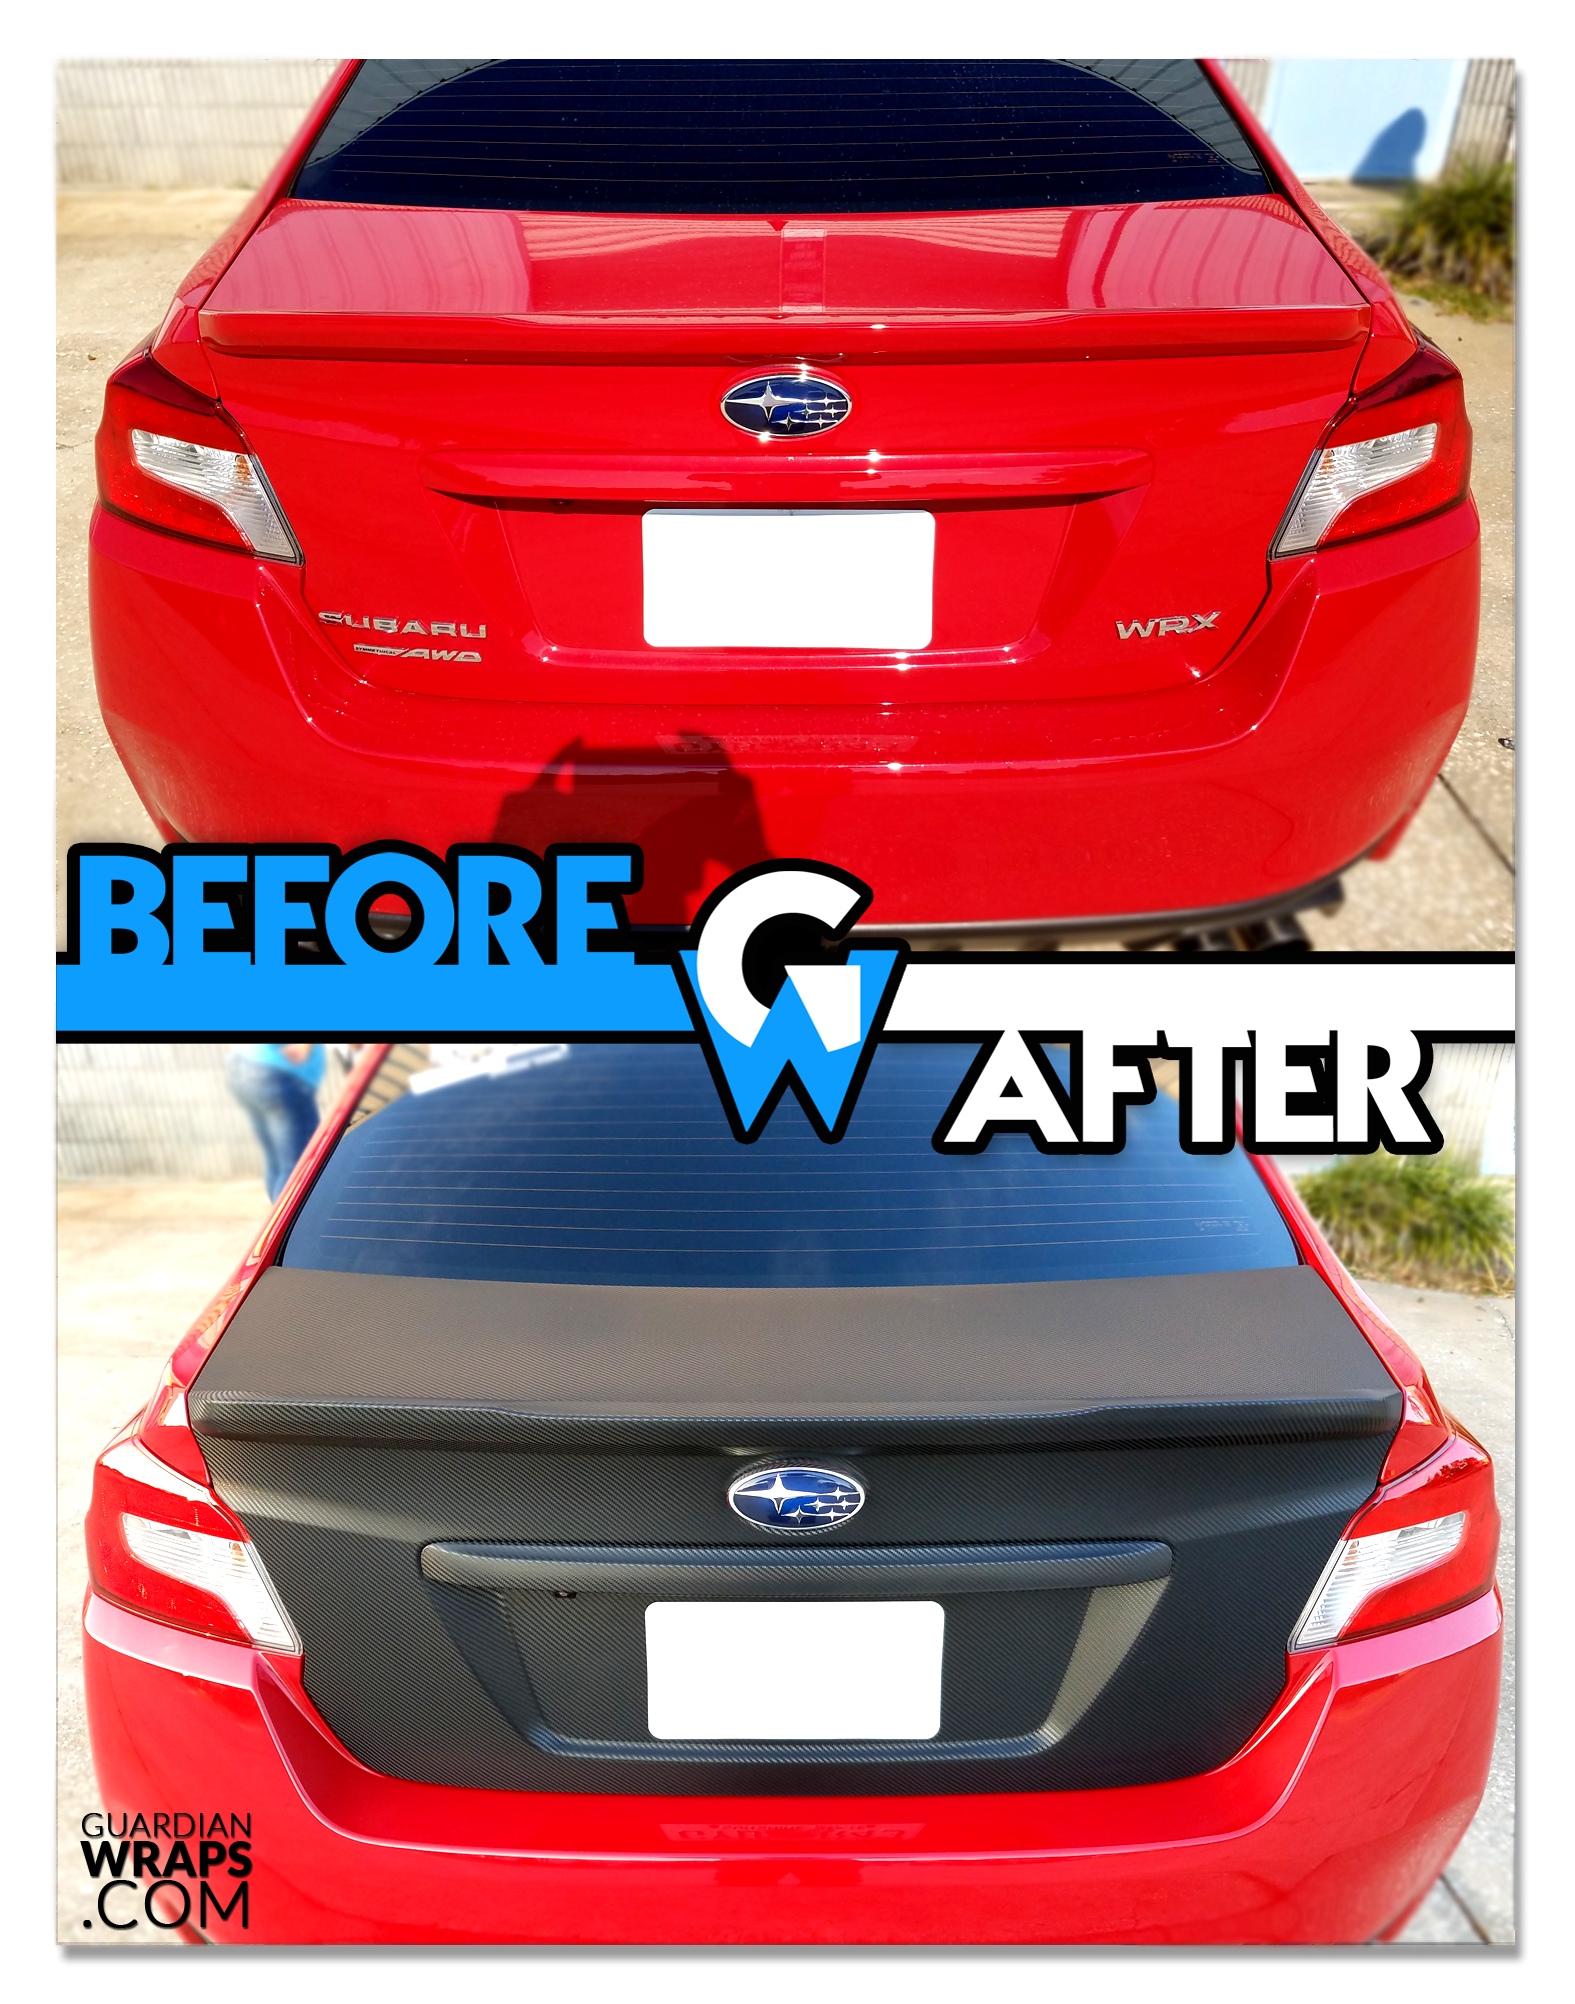 2016 Subaru Wrx Carbon Fiber Trunk Wrap Guardian Wraps Before And After Wraps 2016 Subaru Wrx Wrx